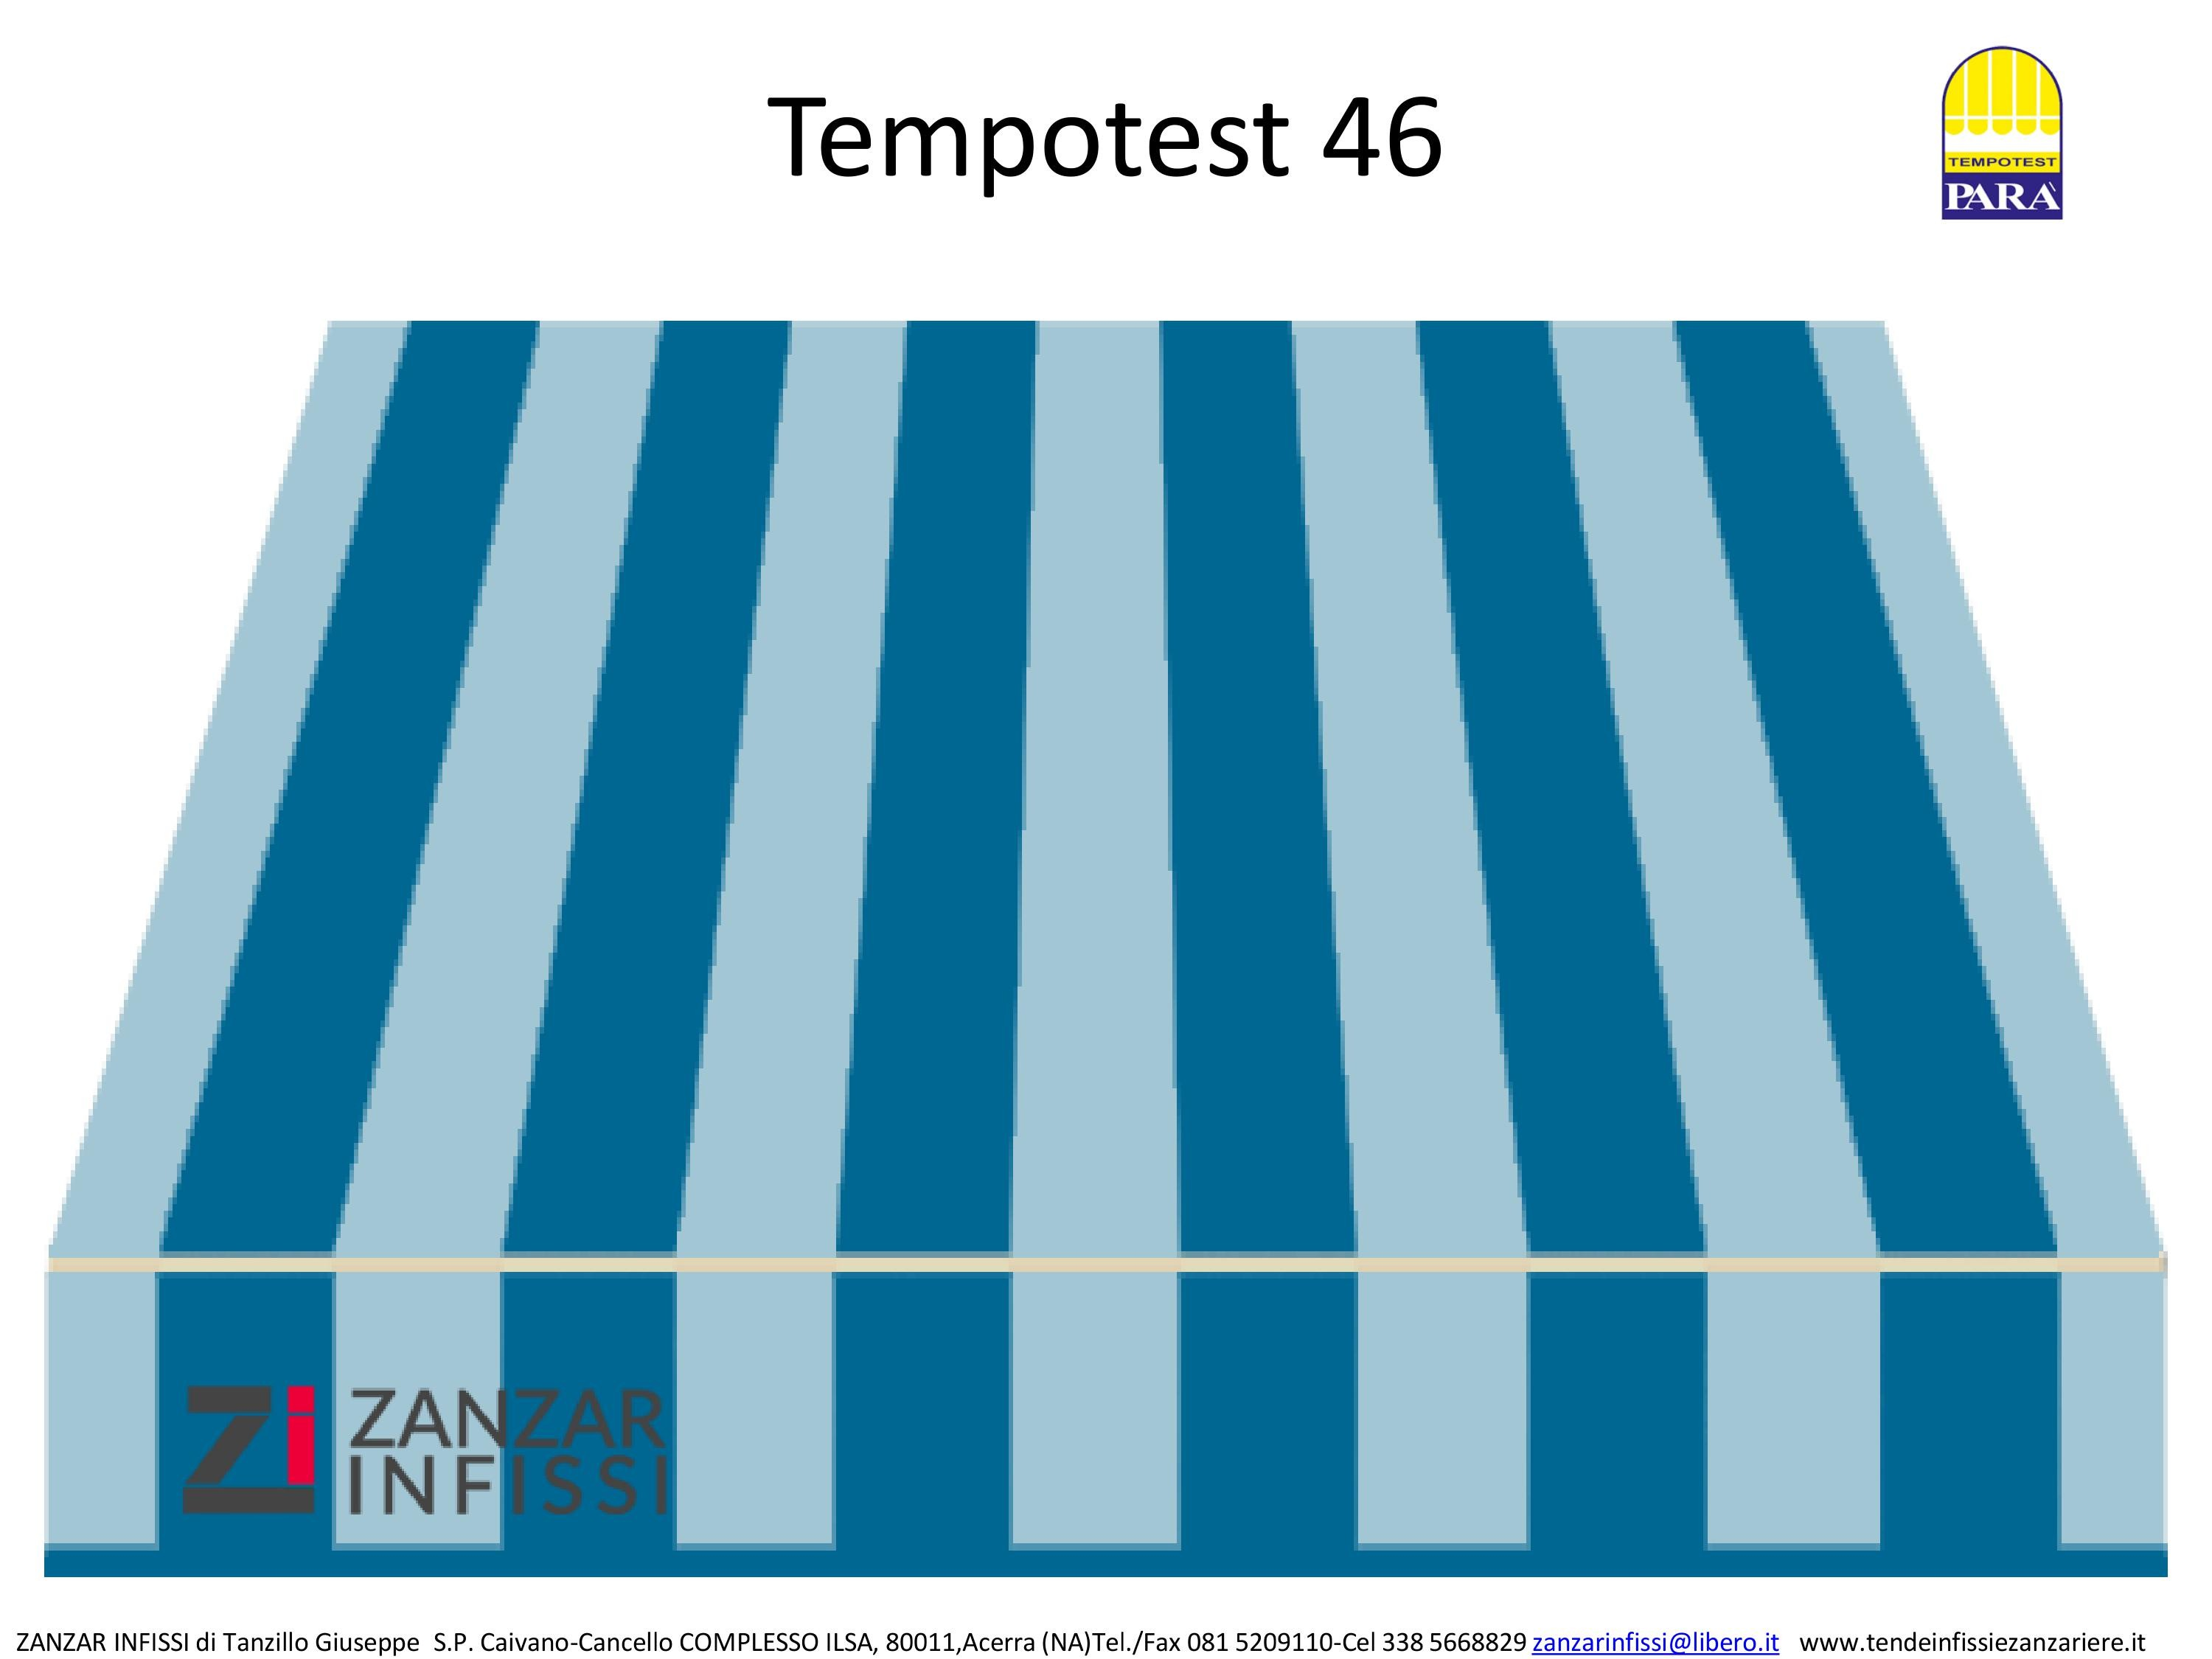 Tempotest 46